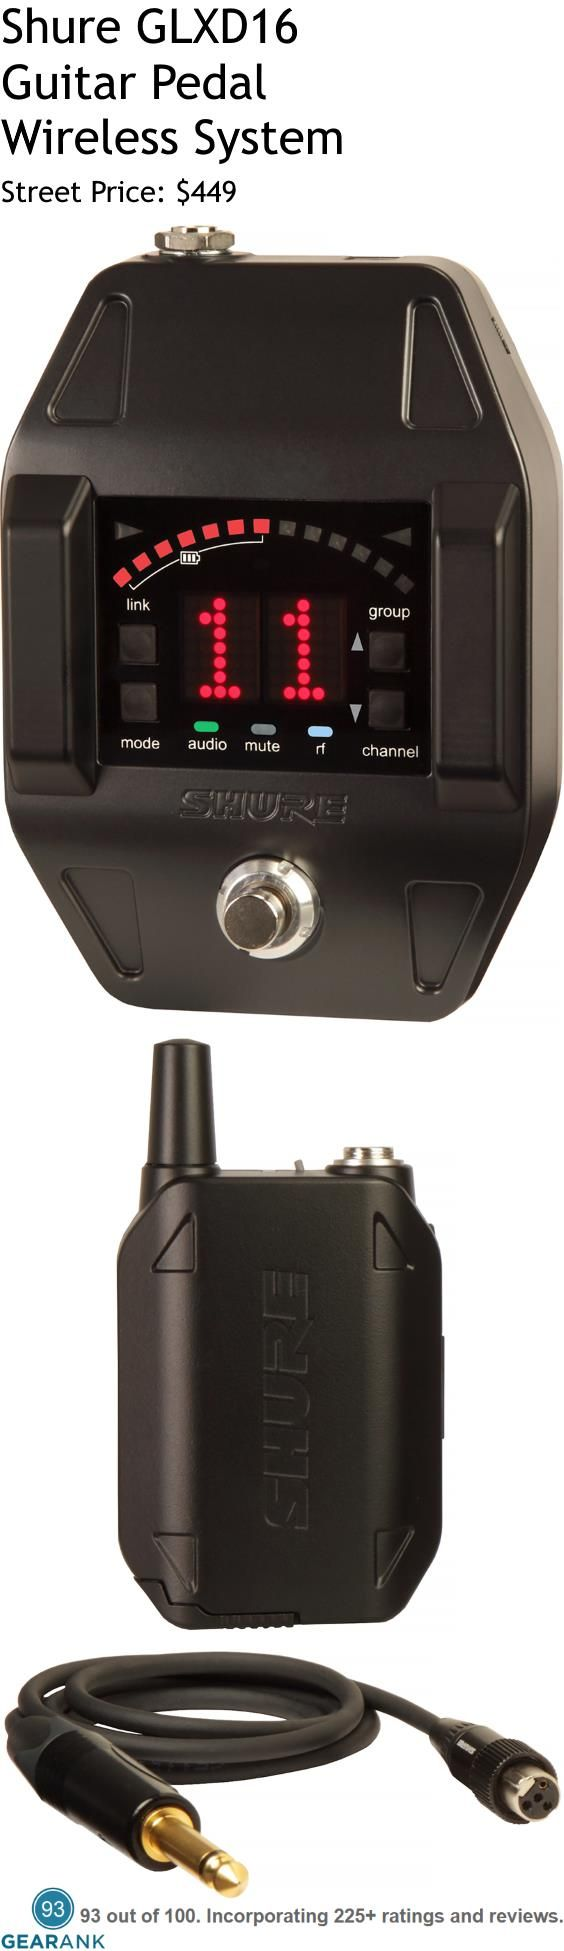 Shure GLXD16 Guitar Pedal Wireless System. Of the many wireless systems for guitars, Shure's GLXD series has the highest ratings. The pedal shaped wireless receiver operates in the 2.4GHz frequency band and allows for up to 8 compatible systems simultaneously.  For a guide to The Best Wireless Guitar Systems see https://www.gearank.com/guides/guitar-wireless-systems